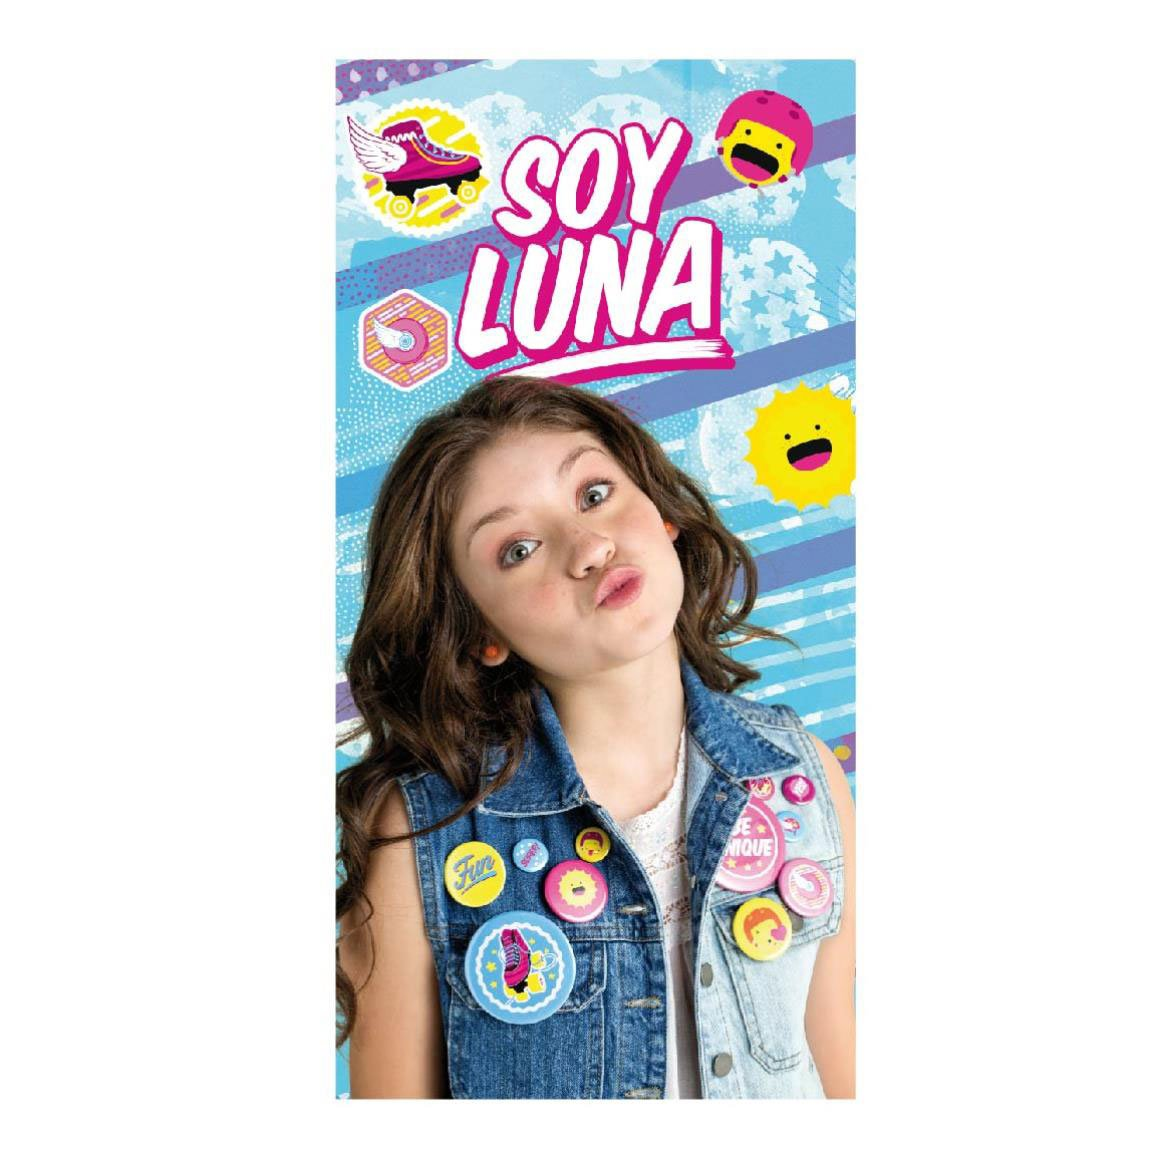 Made in Trade - Soy Luna Serviette en Polyester, 2200002173 Cerda